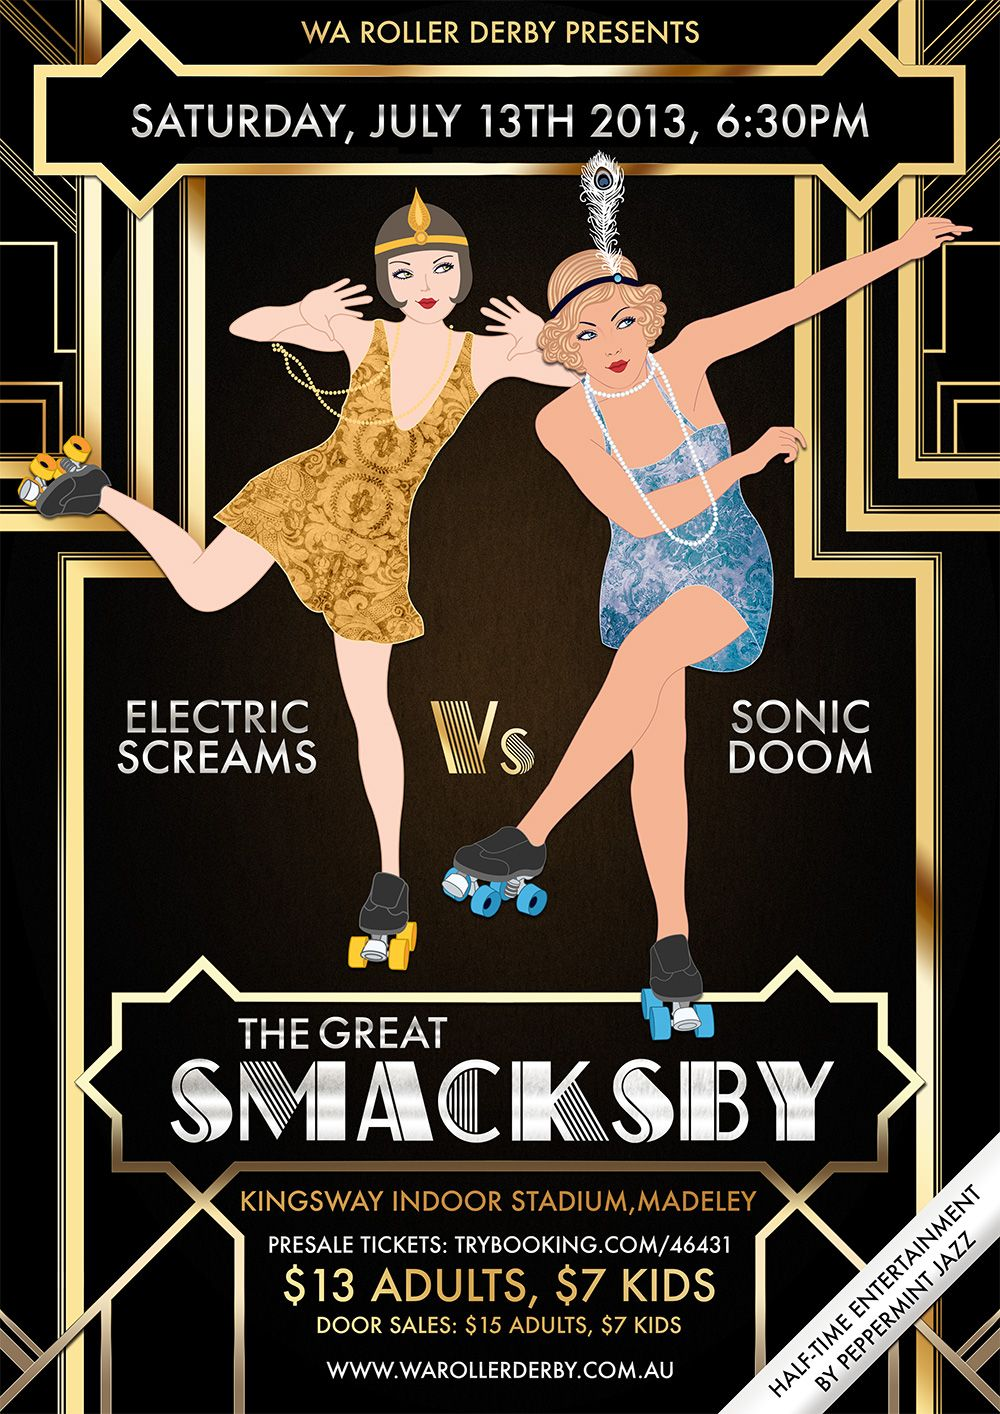 Poster design 1920s - The Great Smacksby Rollerderby Poster 1920 S Gatsby Theme Design By Orla